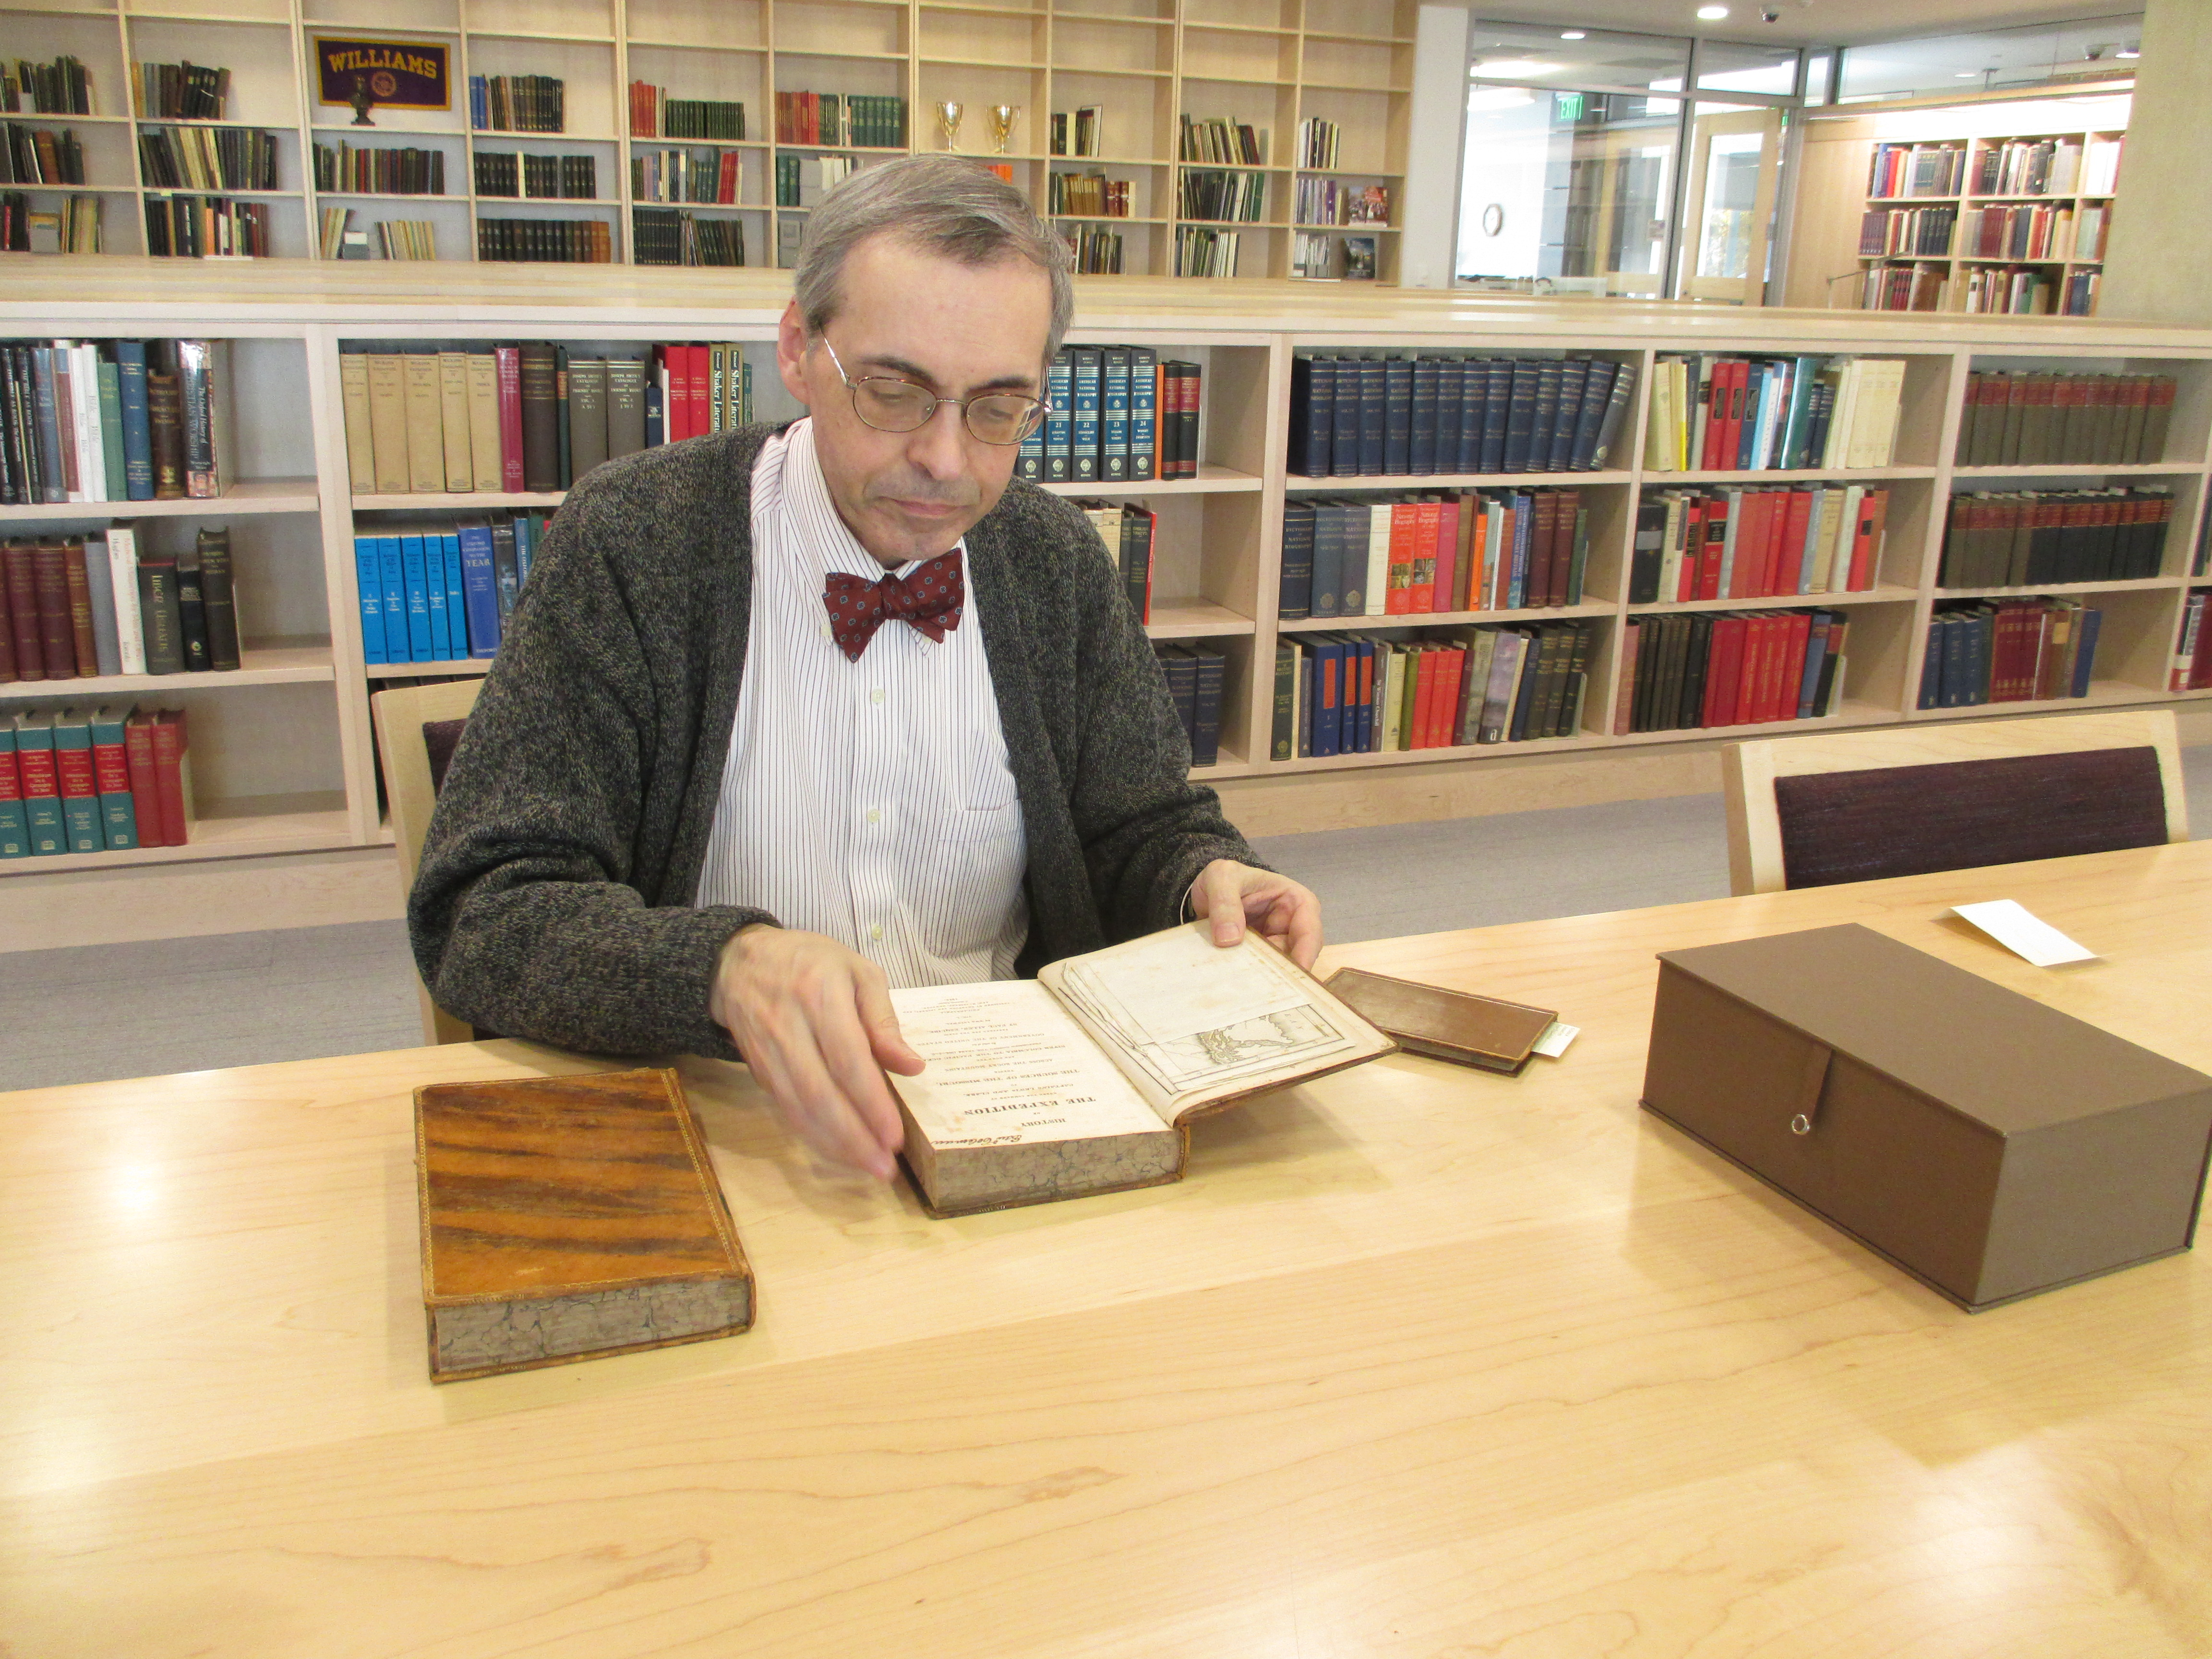 Wayne Hammond in the Chapin Rare Books Library